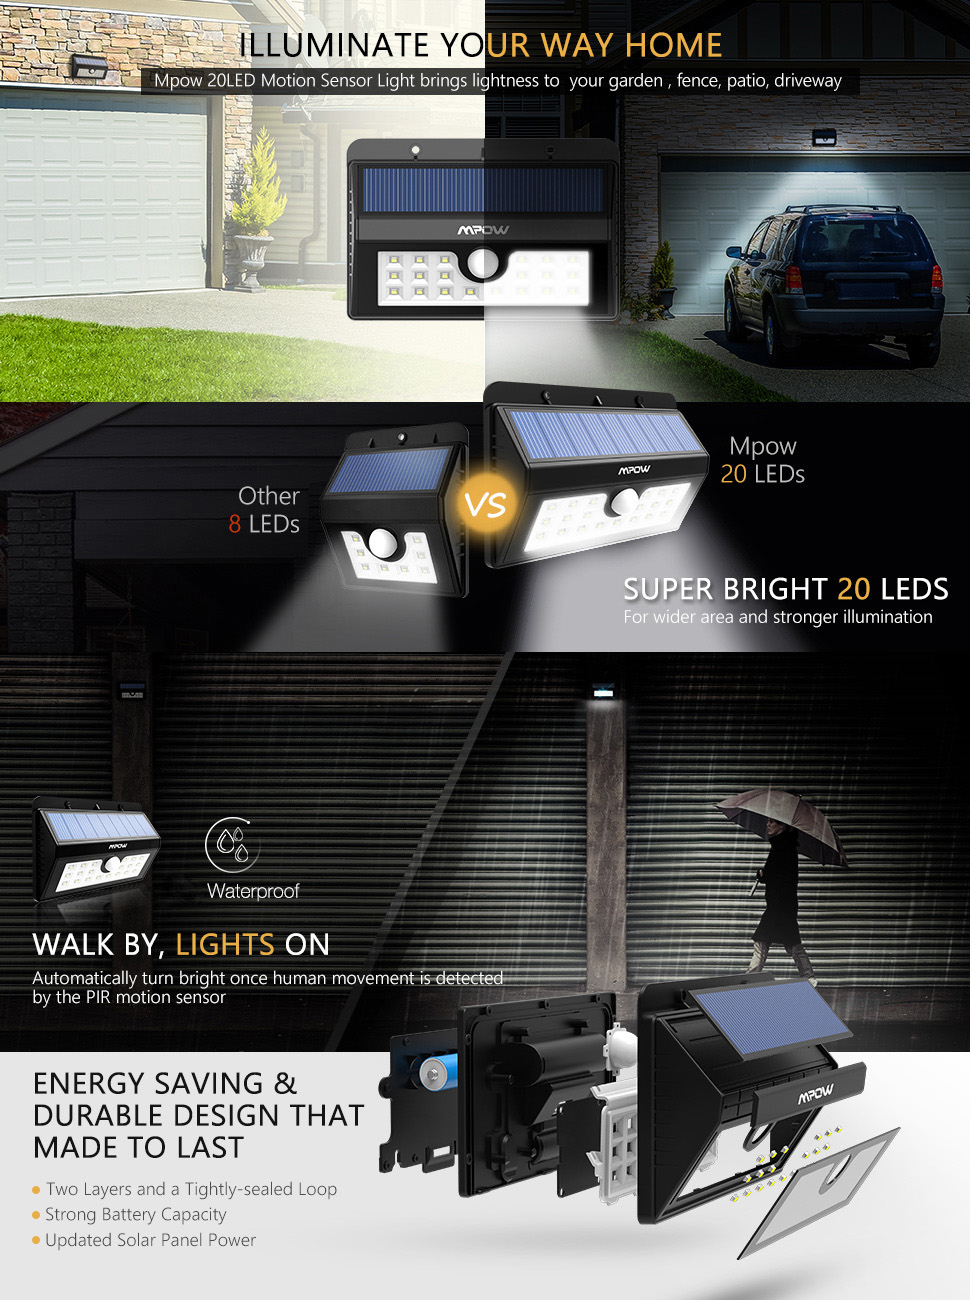 mpow brighten your way home brighter lights last longer